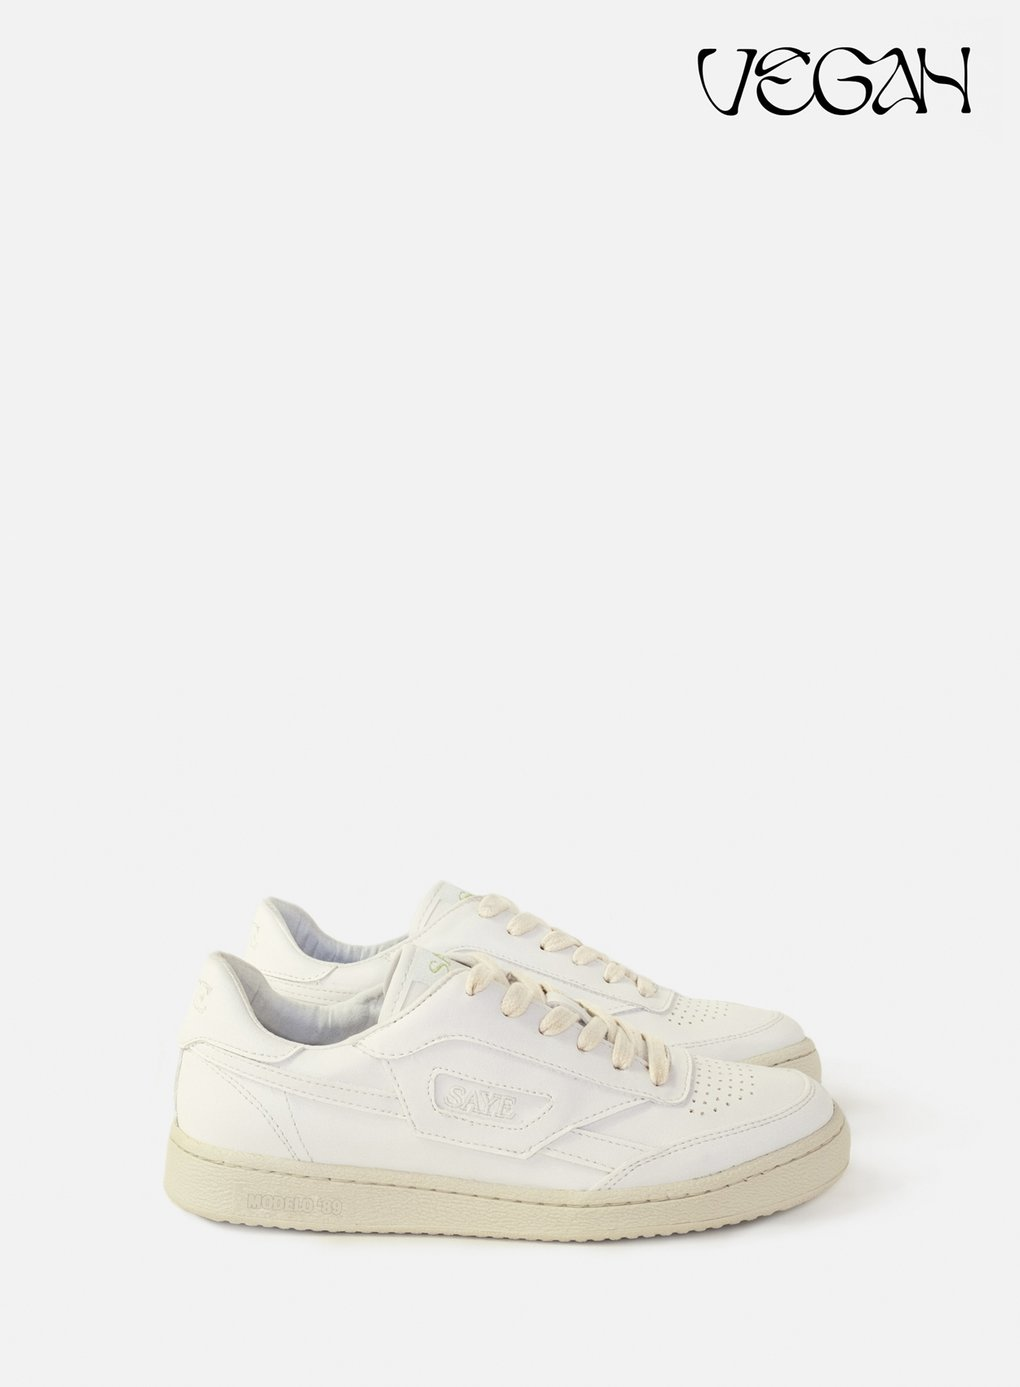 MODELO '89 VEGAN WHITE by Saye, available on sayebrand.com for EUR129 Alessandra Ambrosio Shoes Exact Product